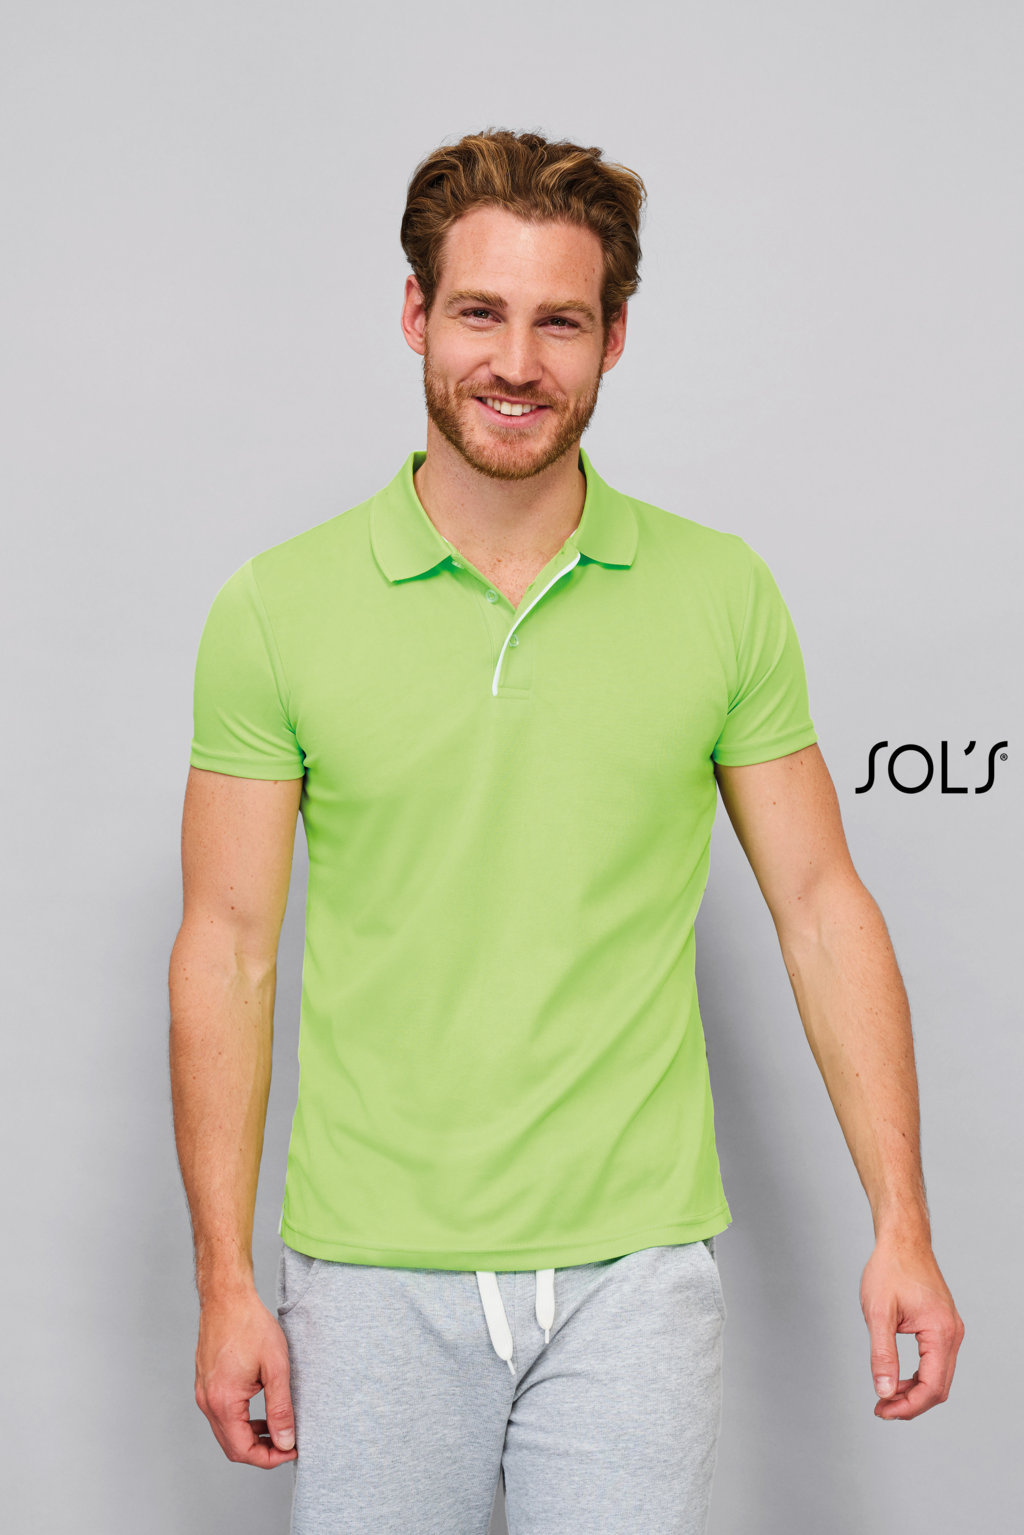 POLO SPORT HOMME SOL'S PERFORMER MEN